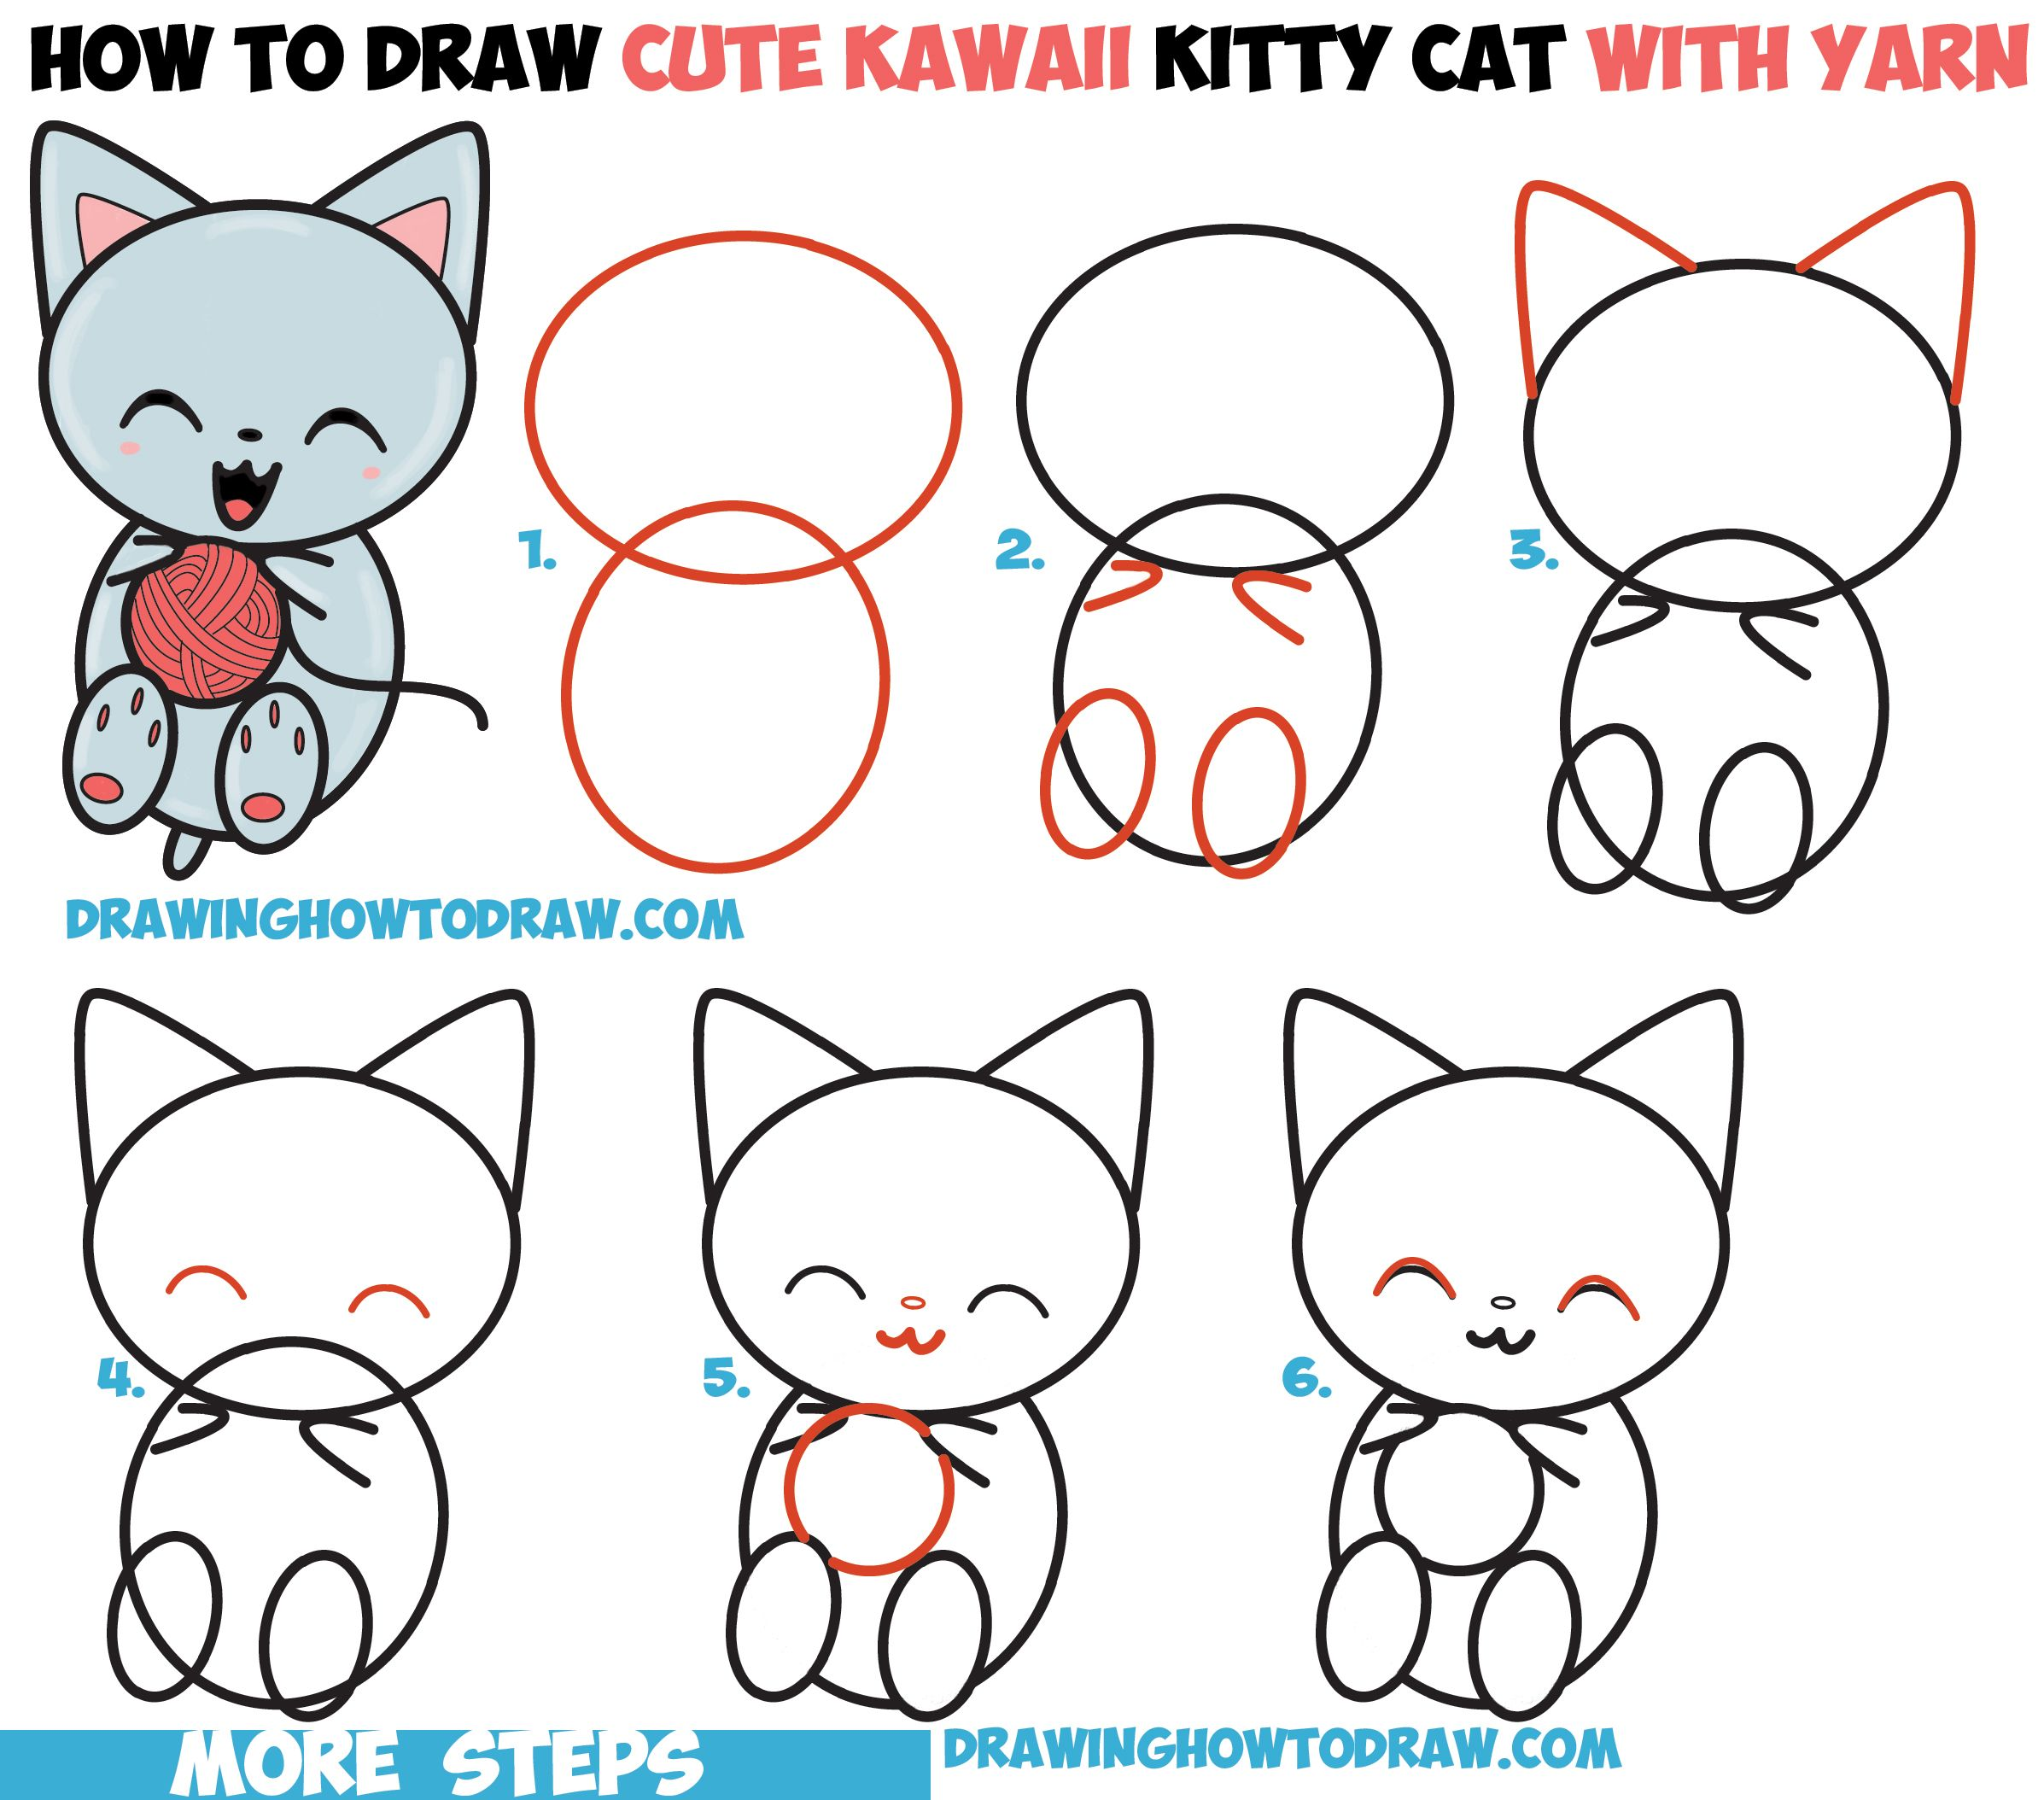 Cute cat drawing easy at getdrawings free for personal use 2394x2108 how to draw cute kawaii kitten cat playing with yarn easy step thecheapjerseys Gallery